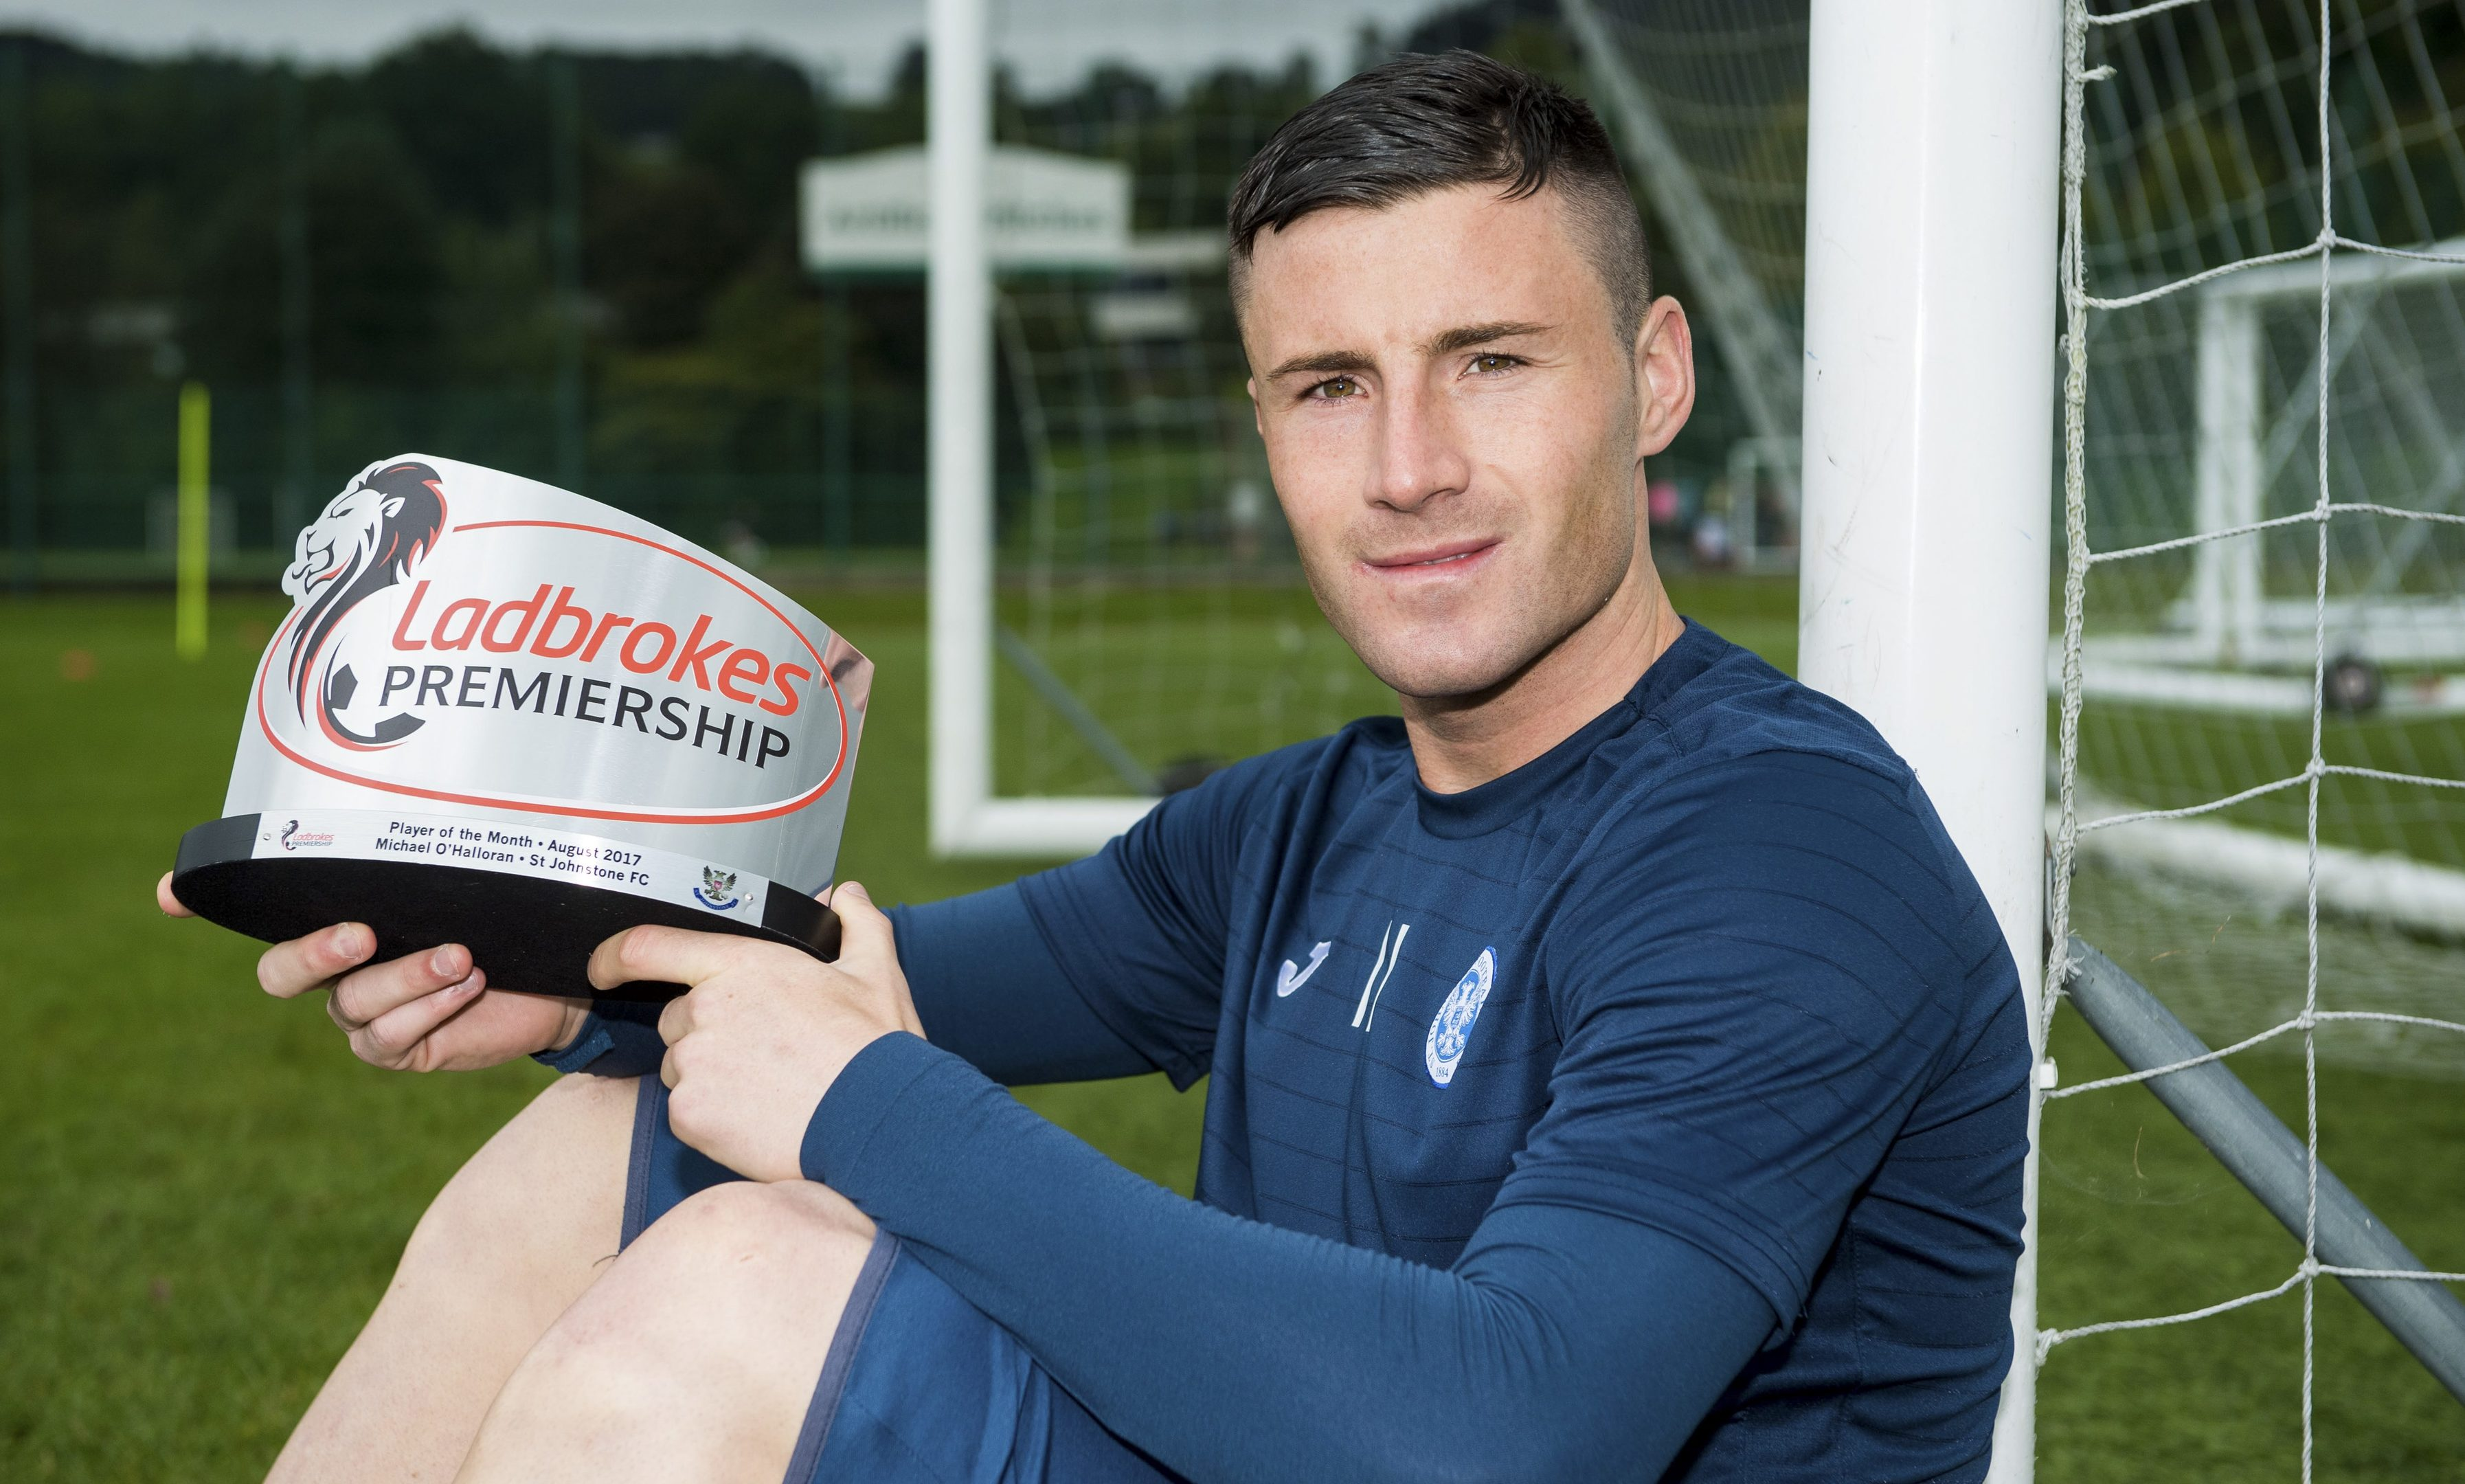 Michael O'Halloran with his Ladbrokes Premiership Player of the Month award for August.